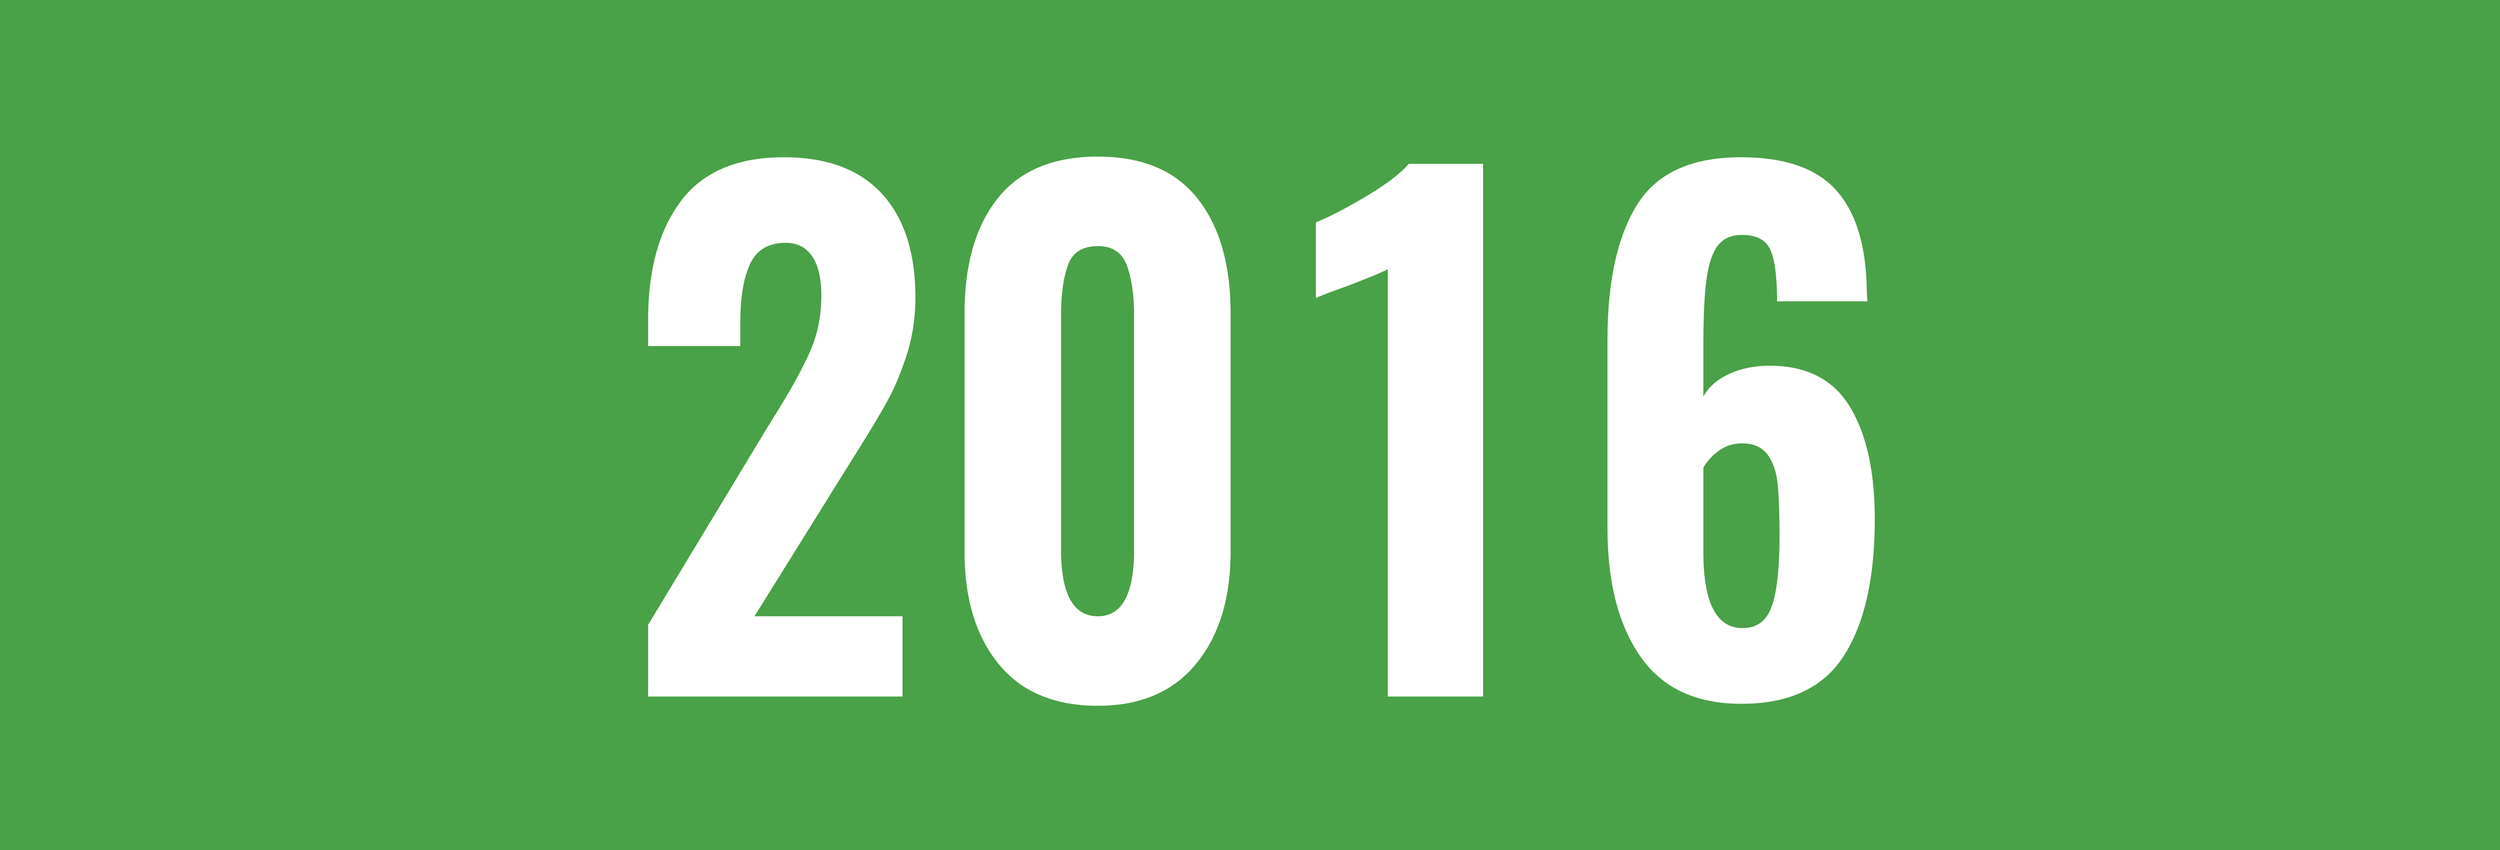 2016 Banner-01.png